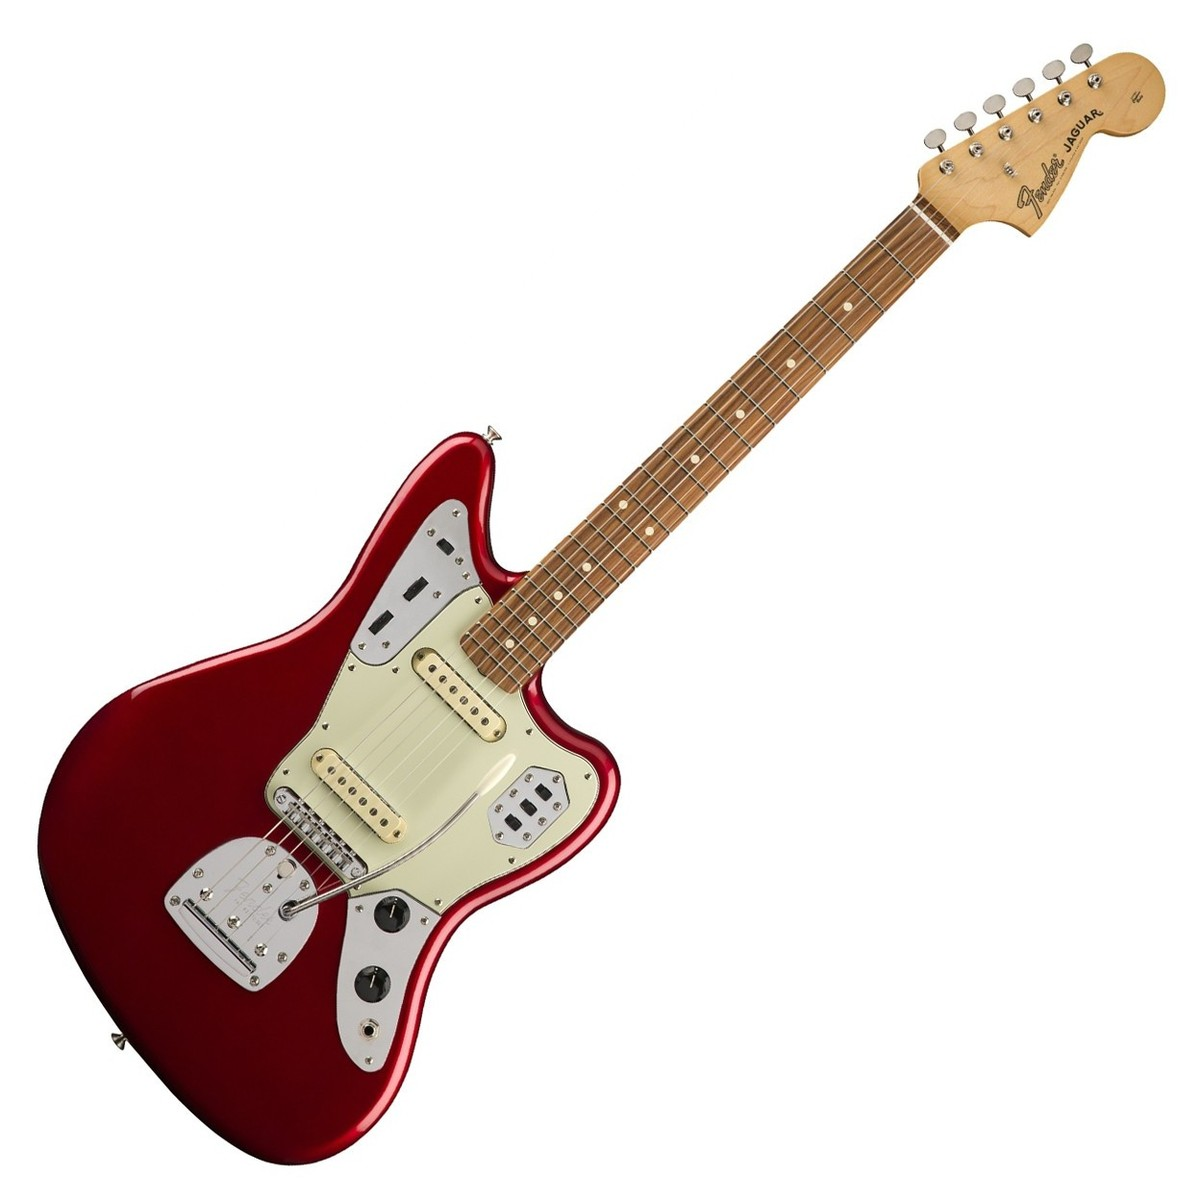 am fender electric vintage with jaguar guitar products american used case headstock original